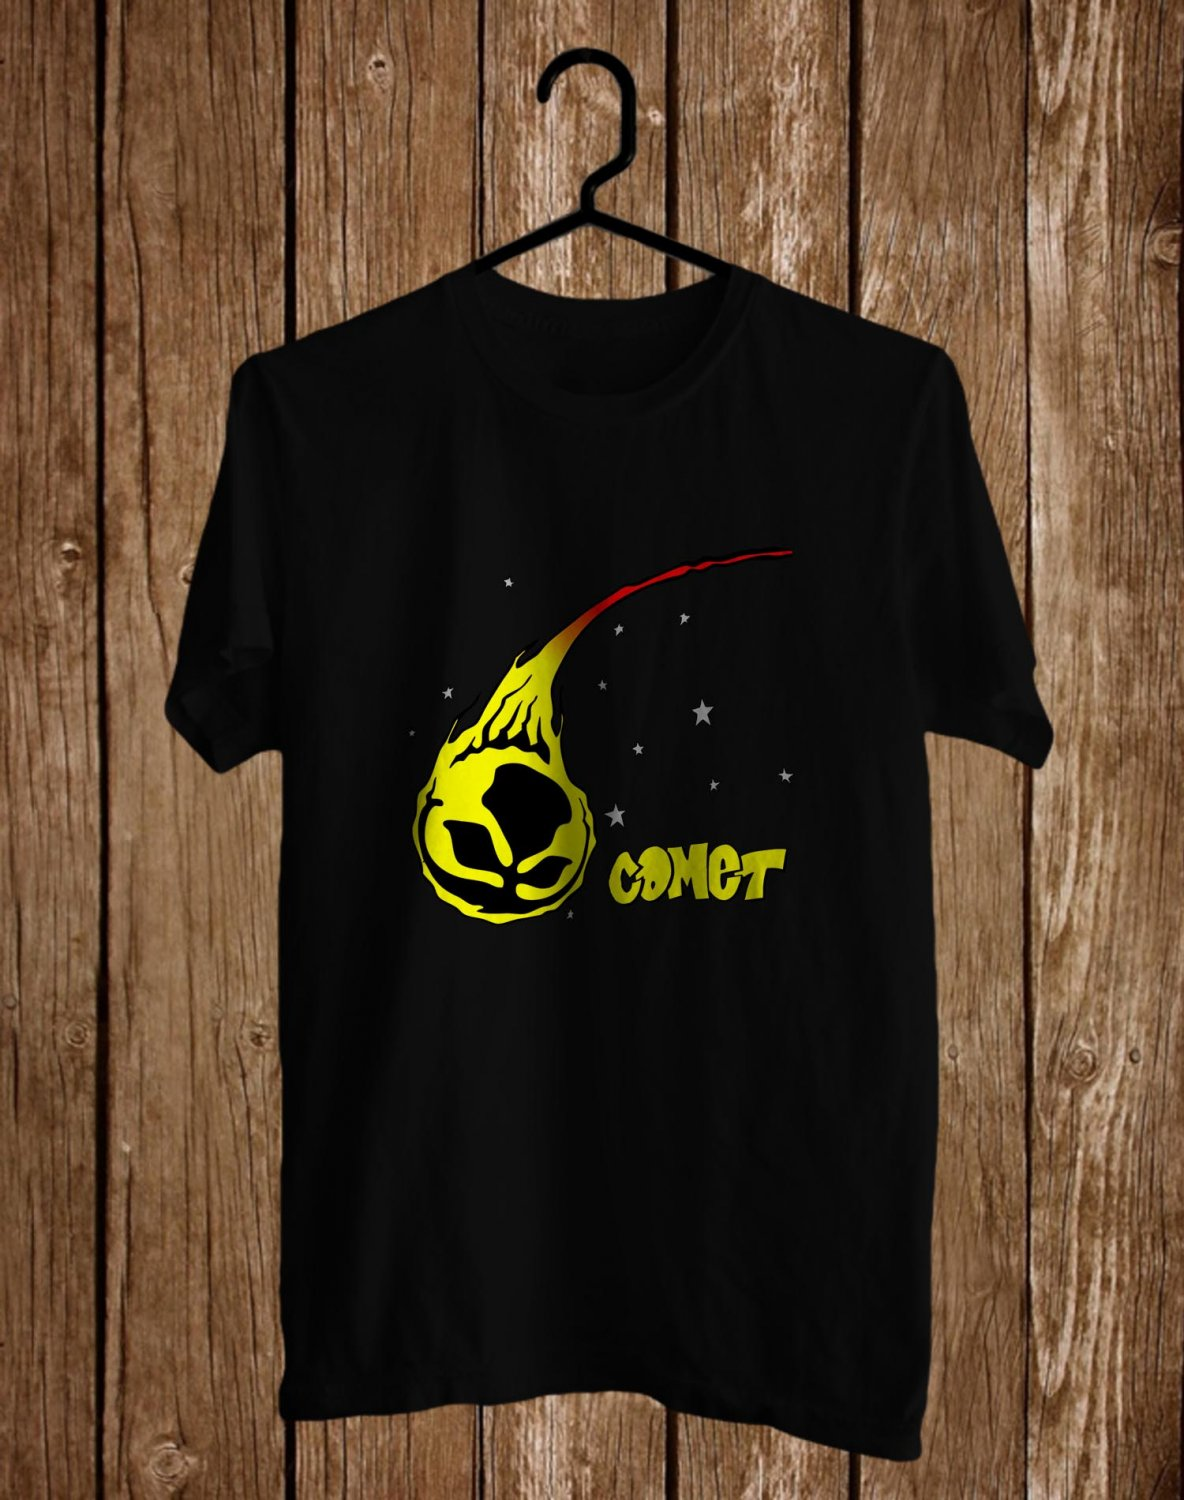 The Bouncing Souls : Comet Black Tee's Front Side by Complexart